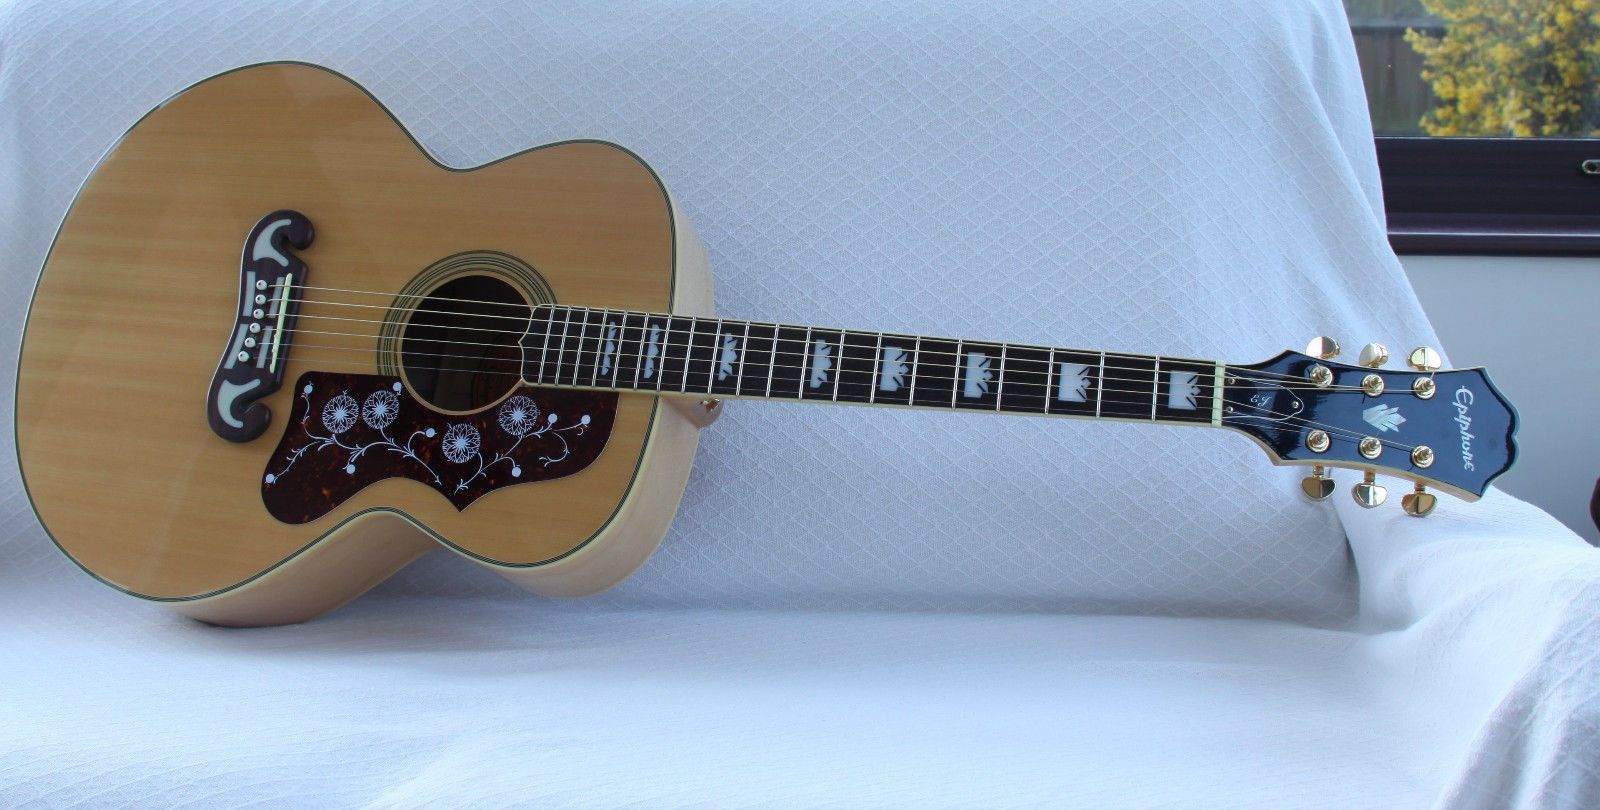 Epiphone EJ200 NA Acoustic Guitar with case | Acoustic guitar ...